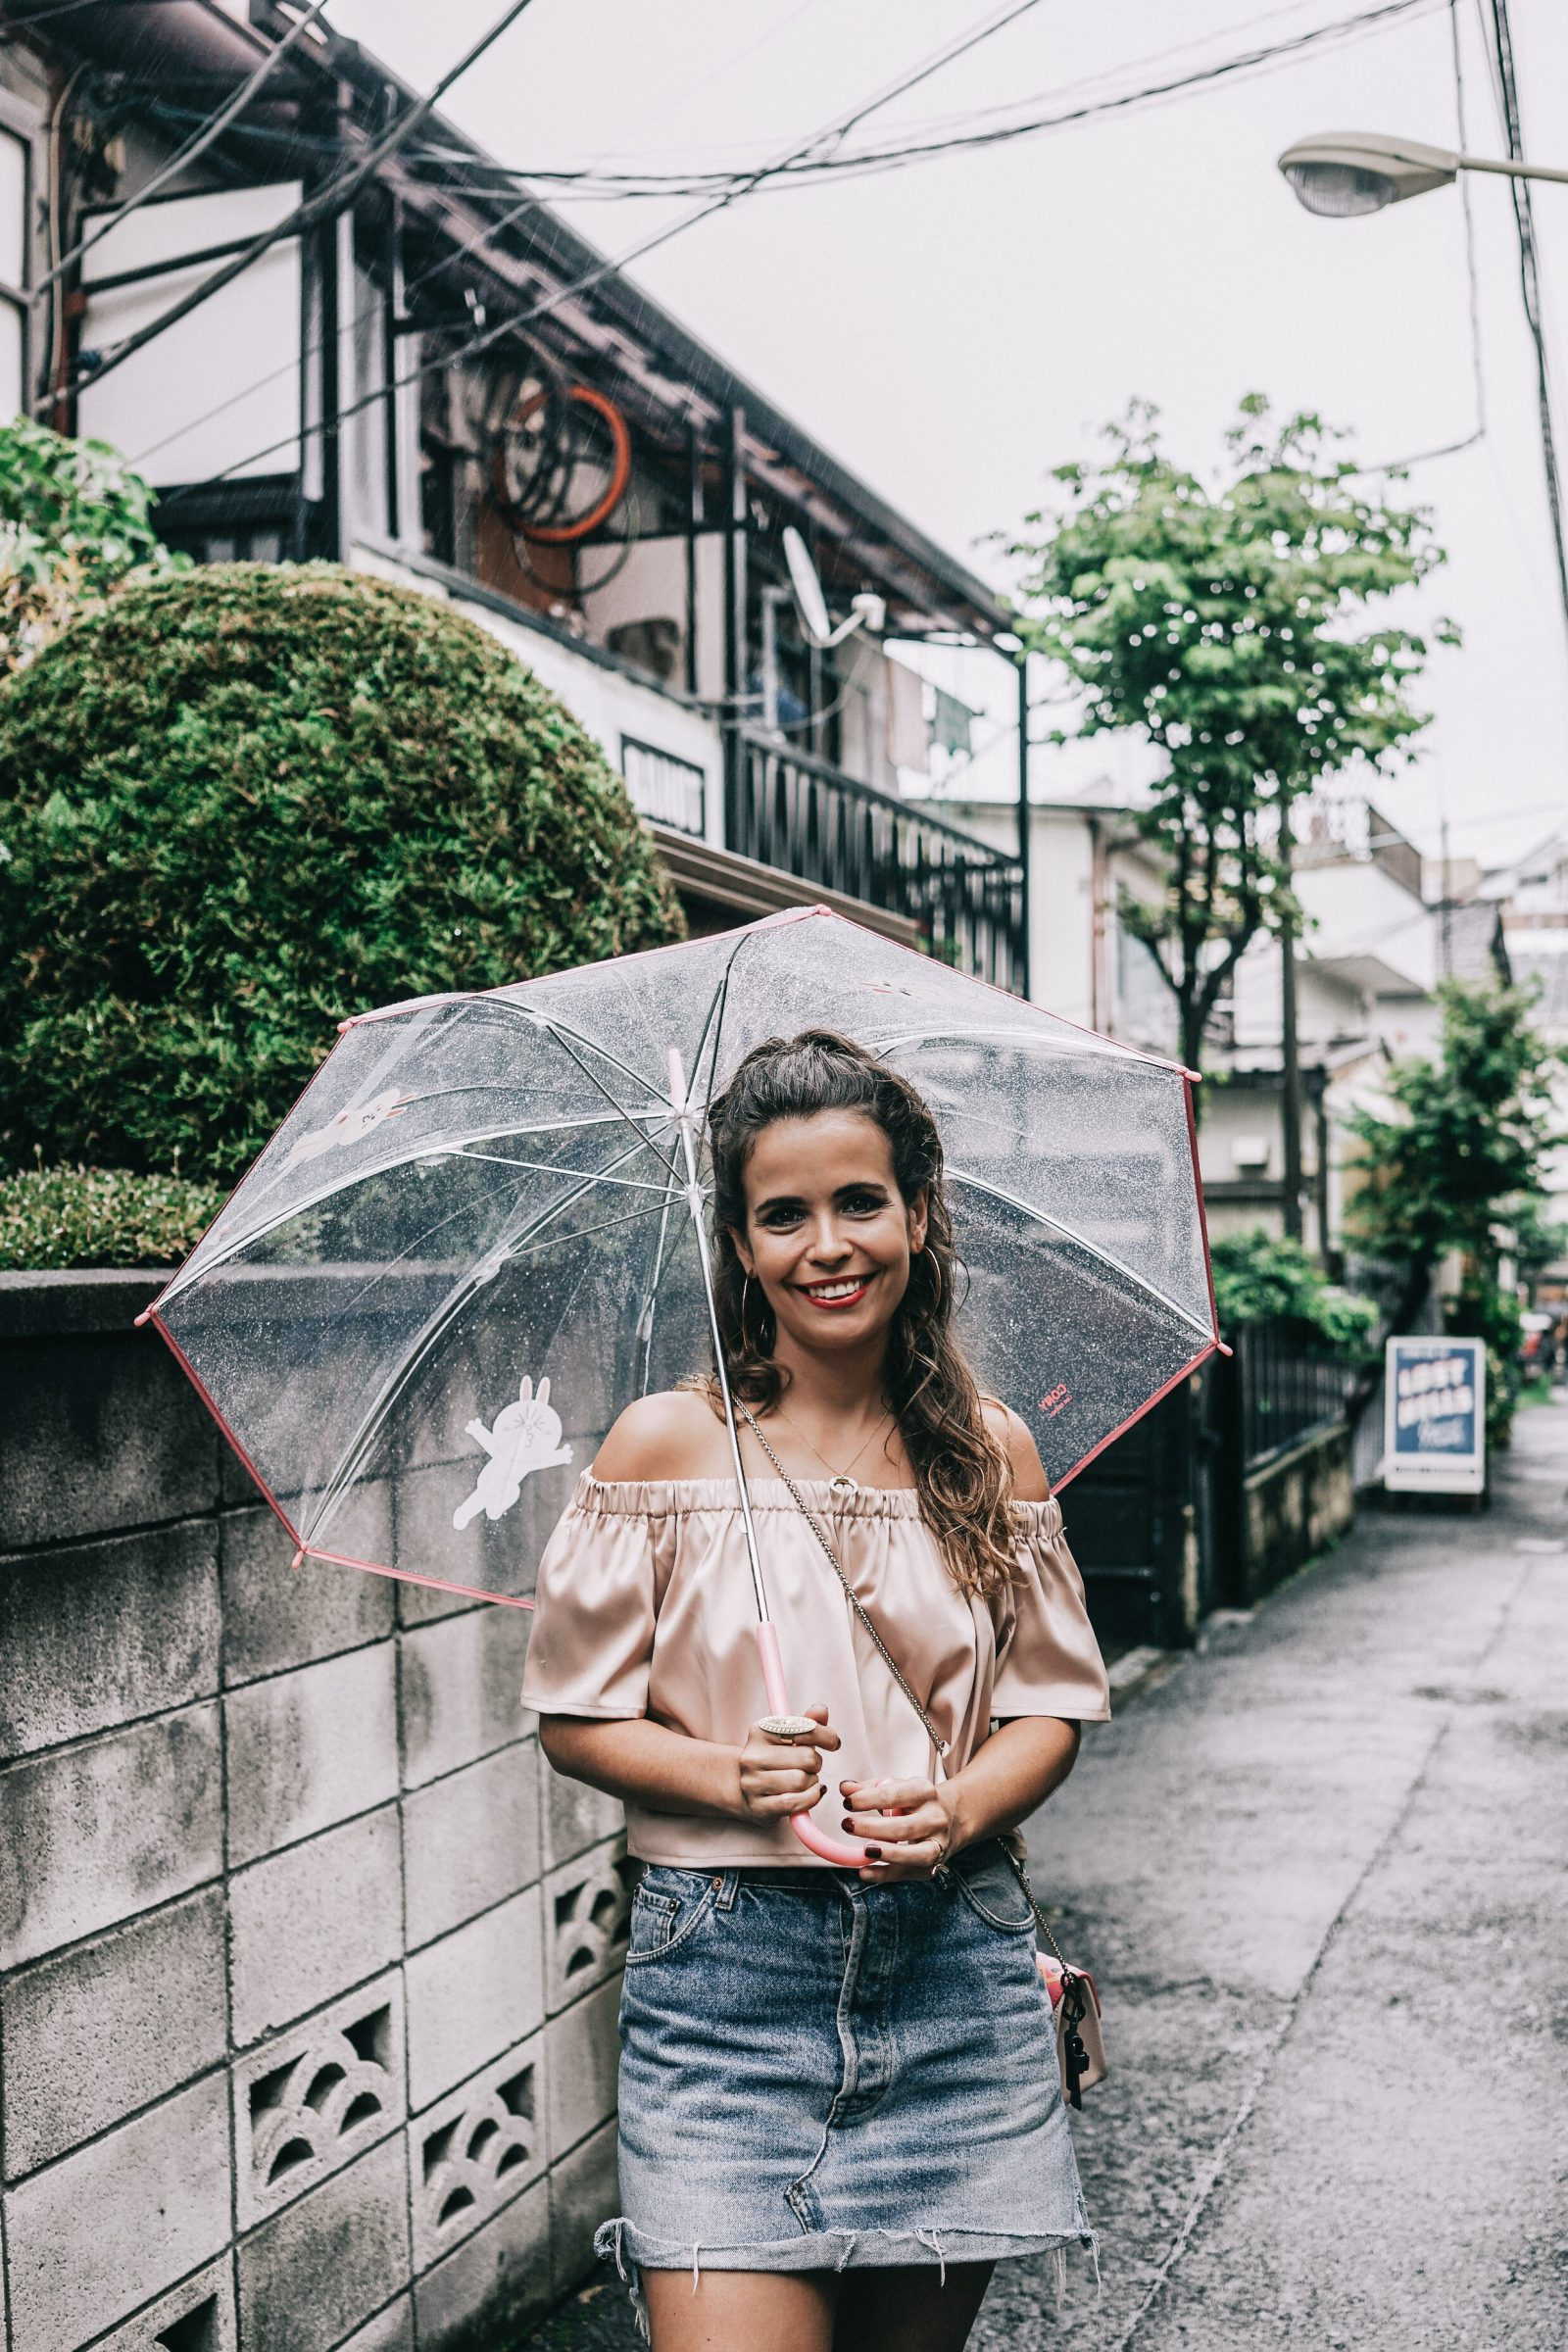 Tokyo_Travel_Guide-Fish_Market-Harajuku-Levis_Denim_Skirt-Off_The_Shoulders_Top-YSL_Sneakers-Outfit-Collage_Vintage-Street_Style-138